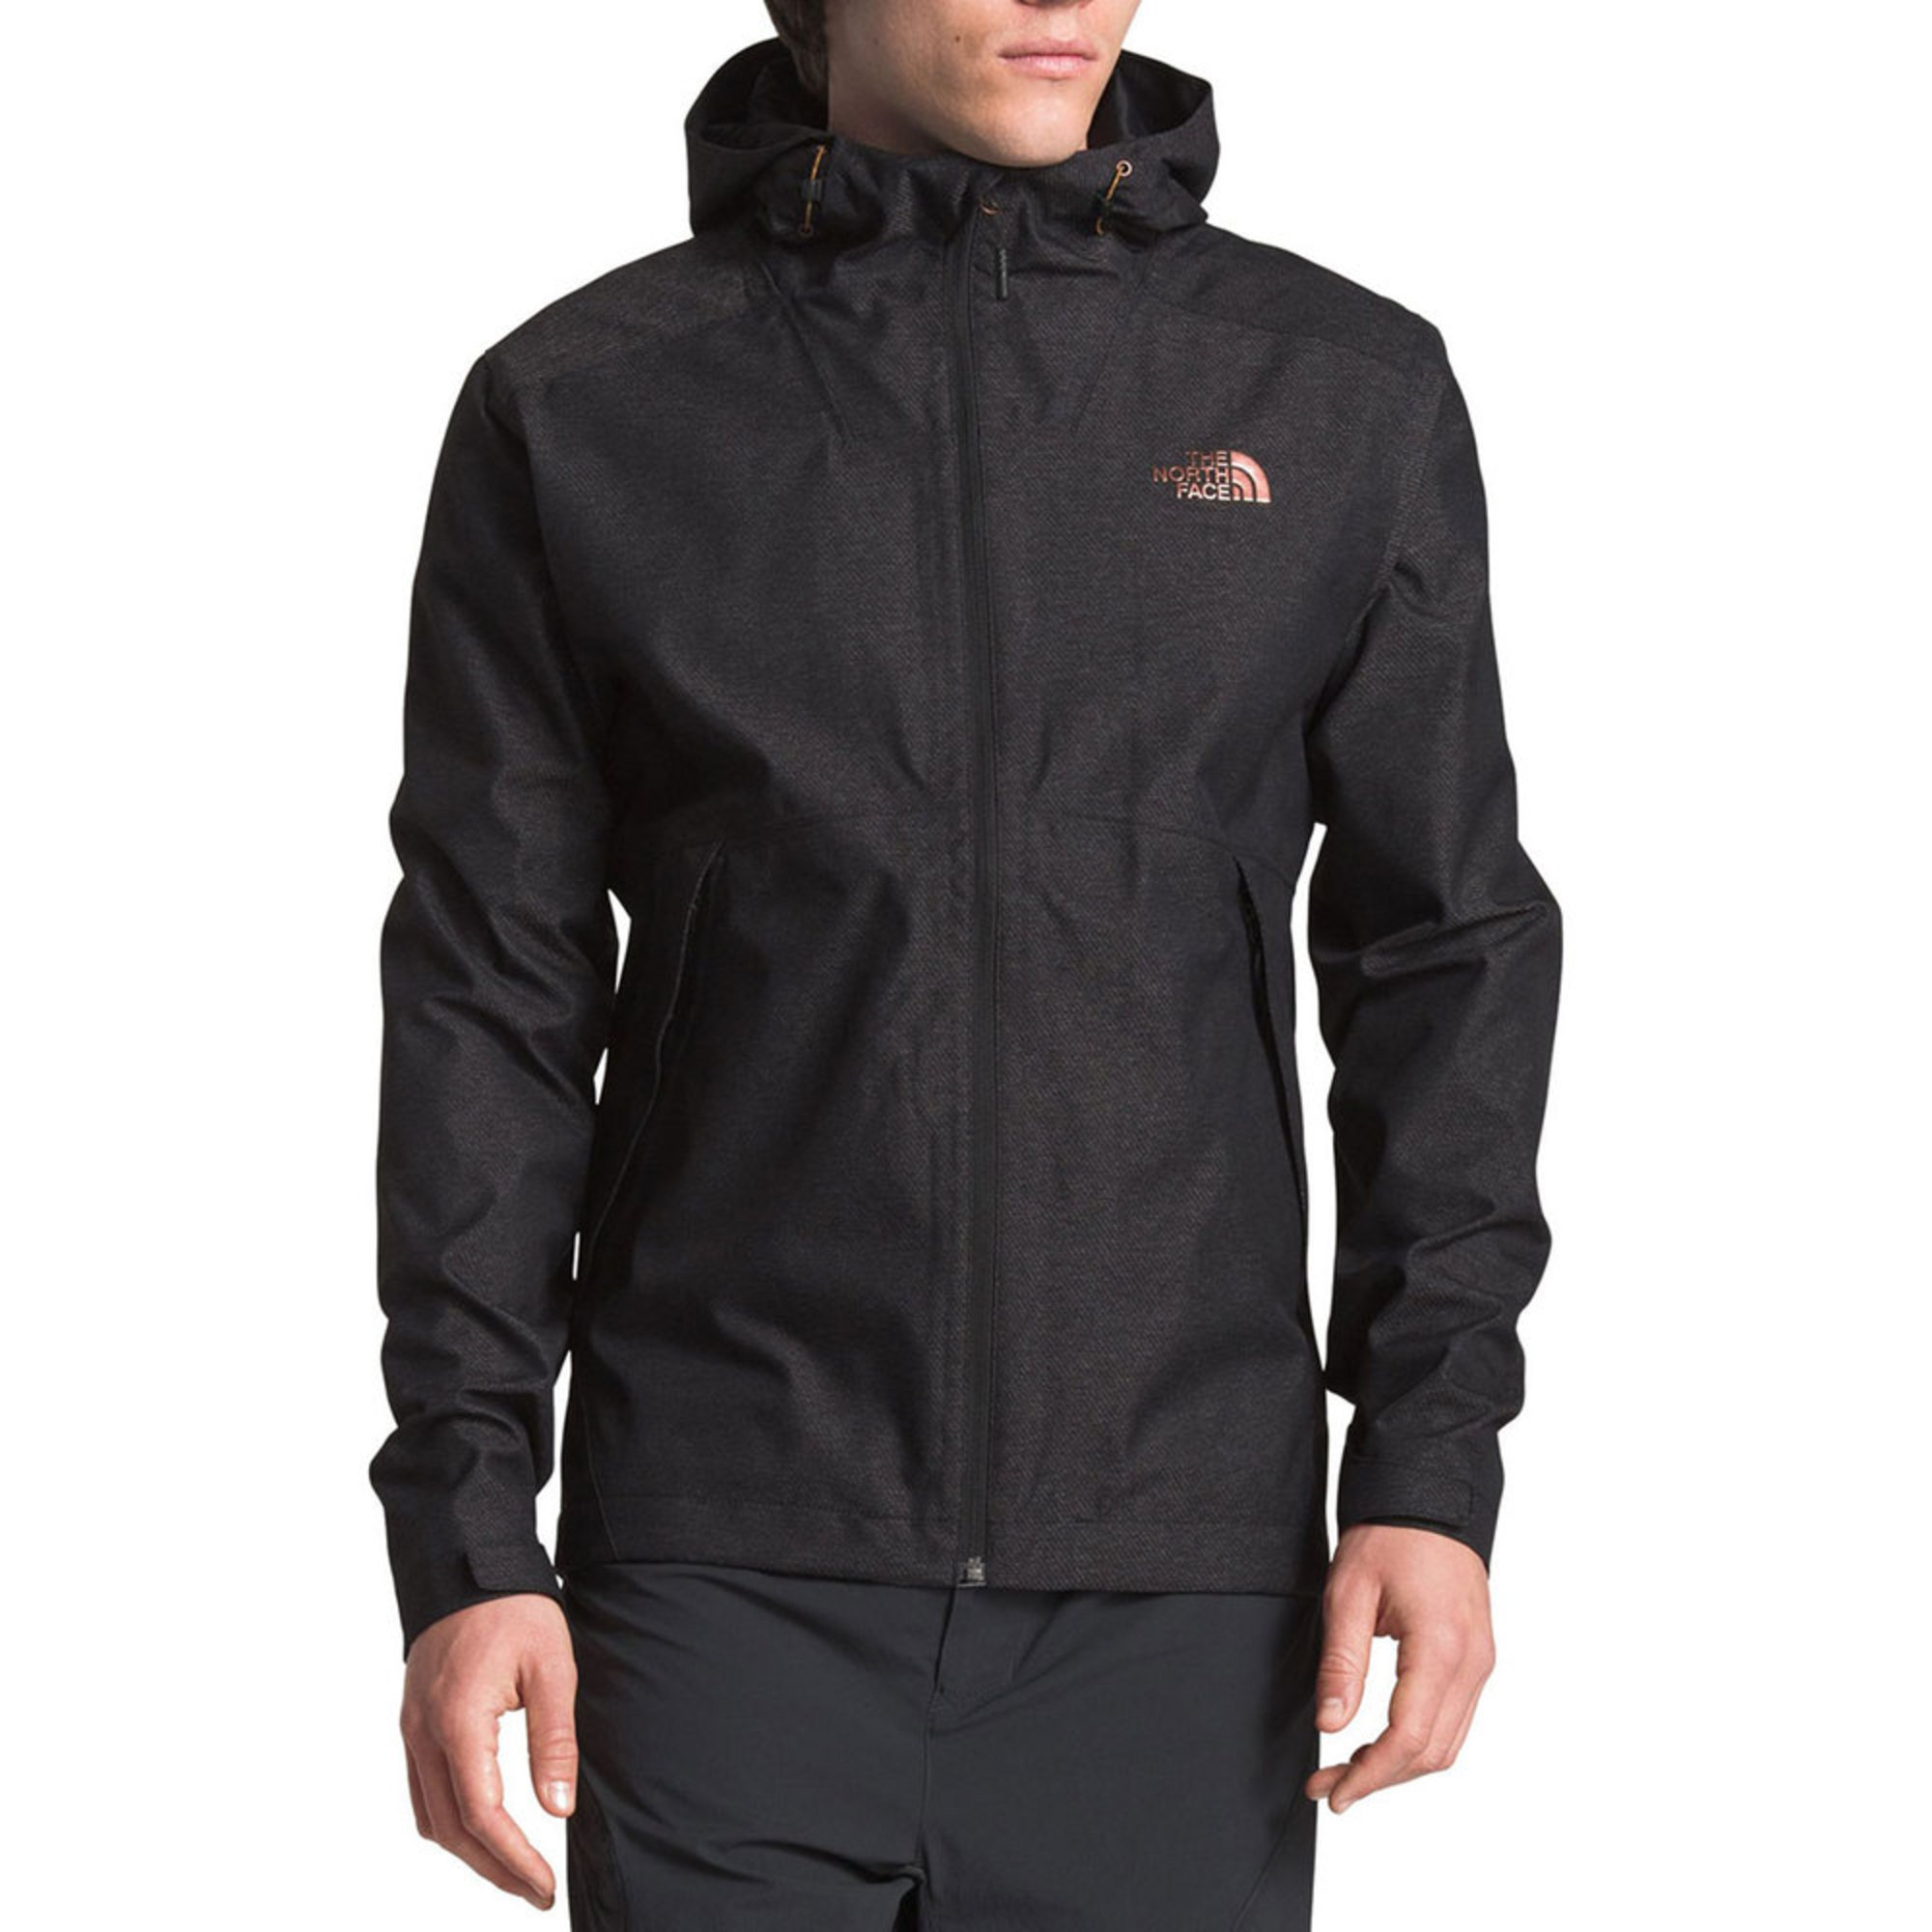 91a0403f9 The North Face Men's Millerton Dobby Rain Jacket